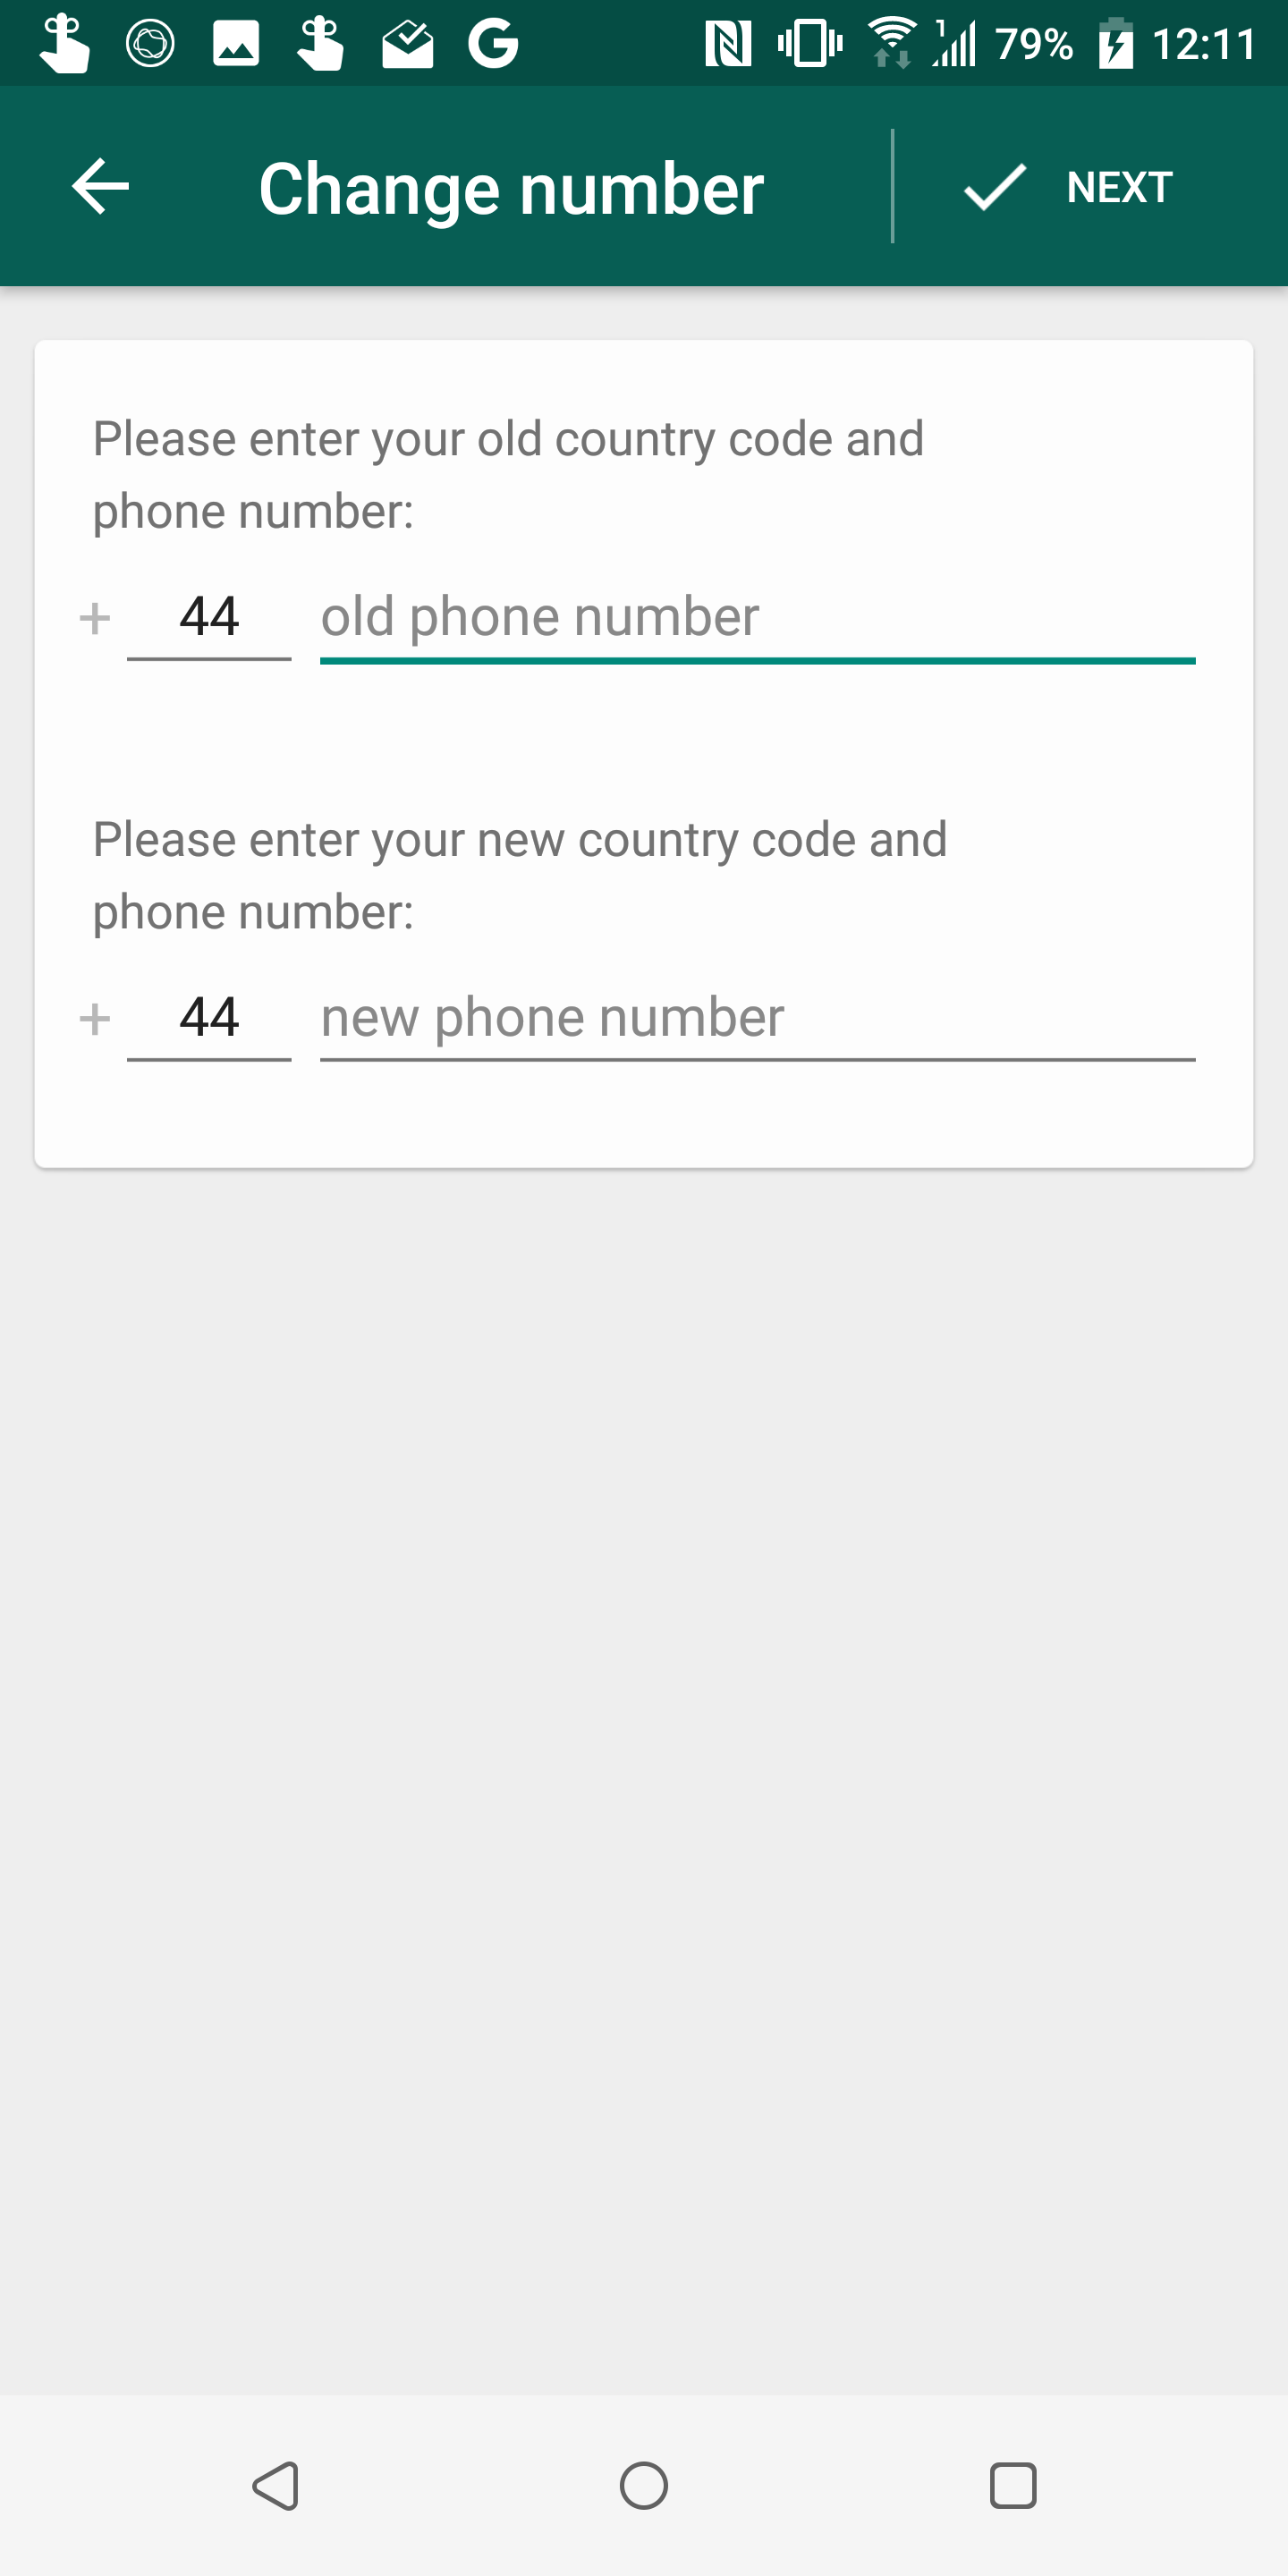 WhatsApp's 'change number' feature now includes an option to